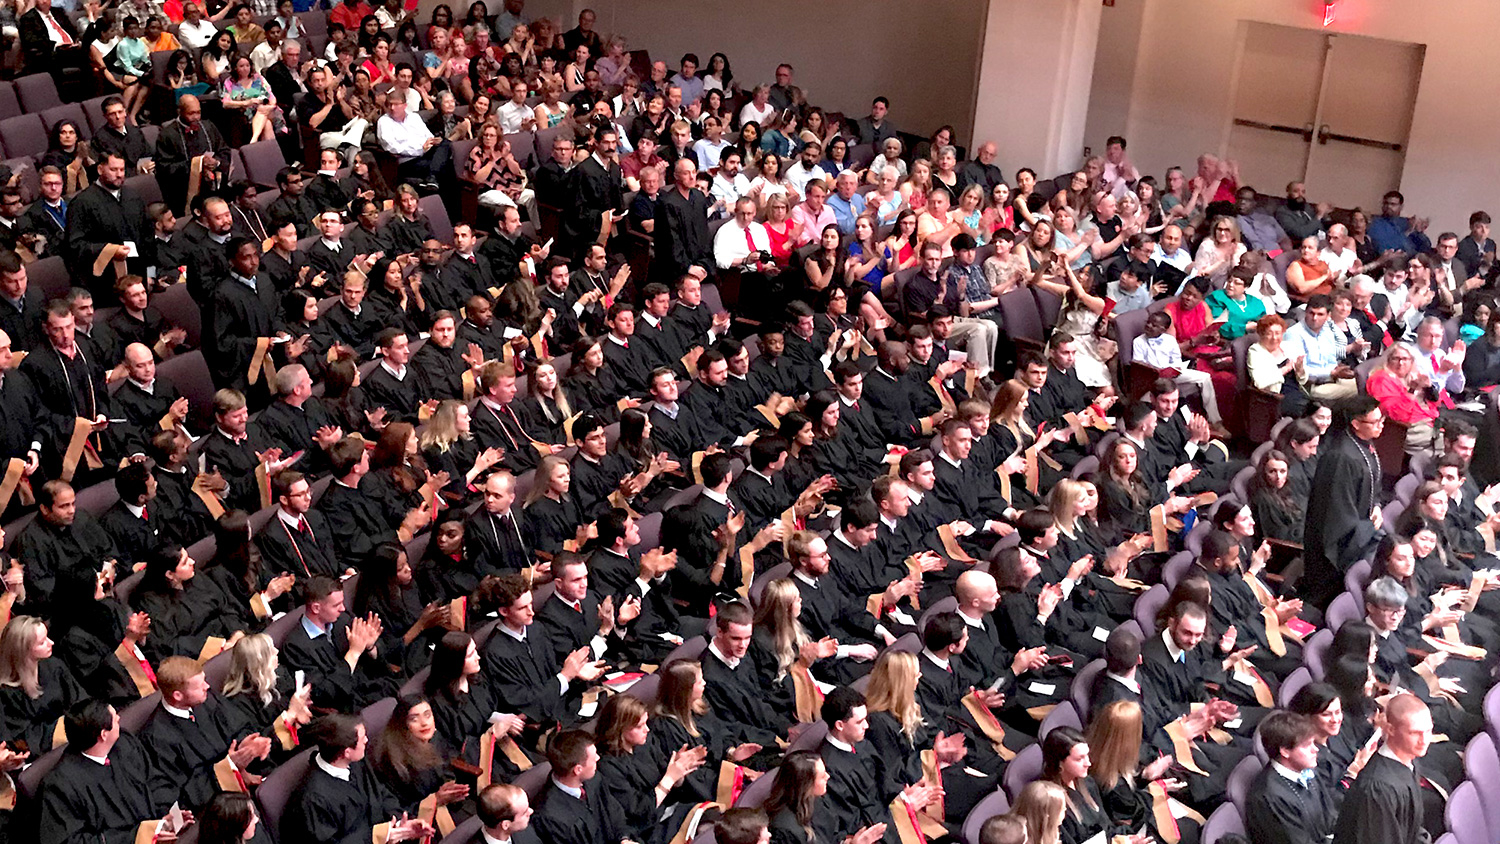 Family and friends join Poole College's Jenkins graduate students for their 2019 Hooding Ceremony at Meymandi Concert Hall in Raleigh.